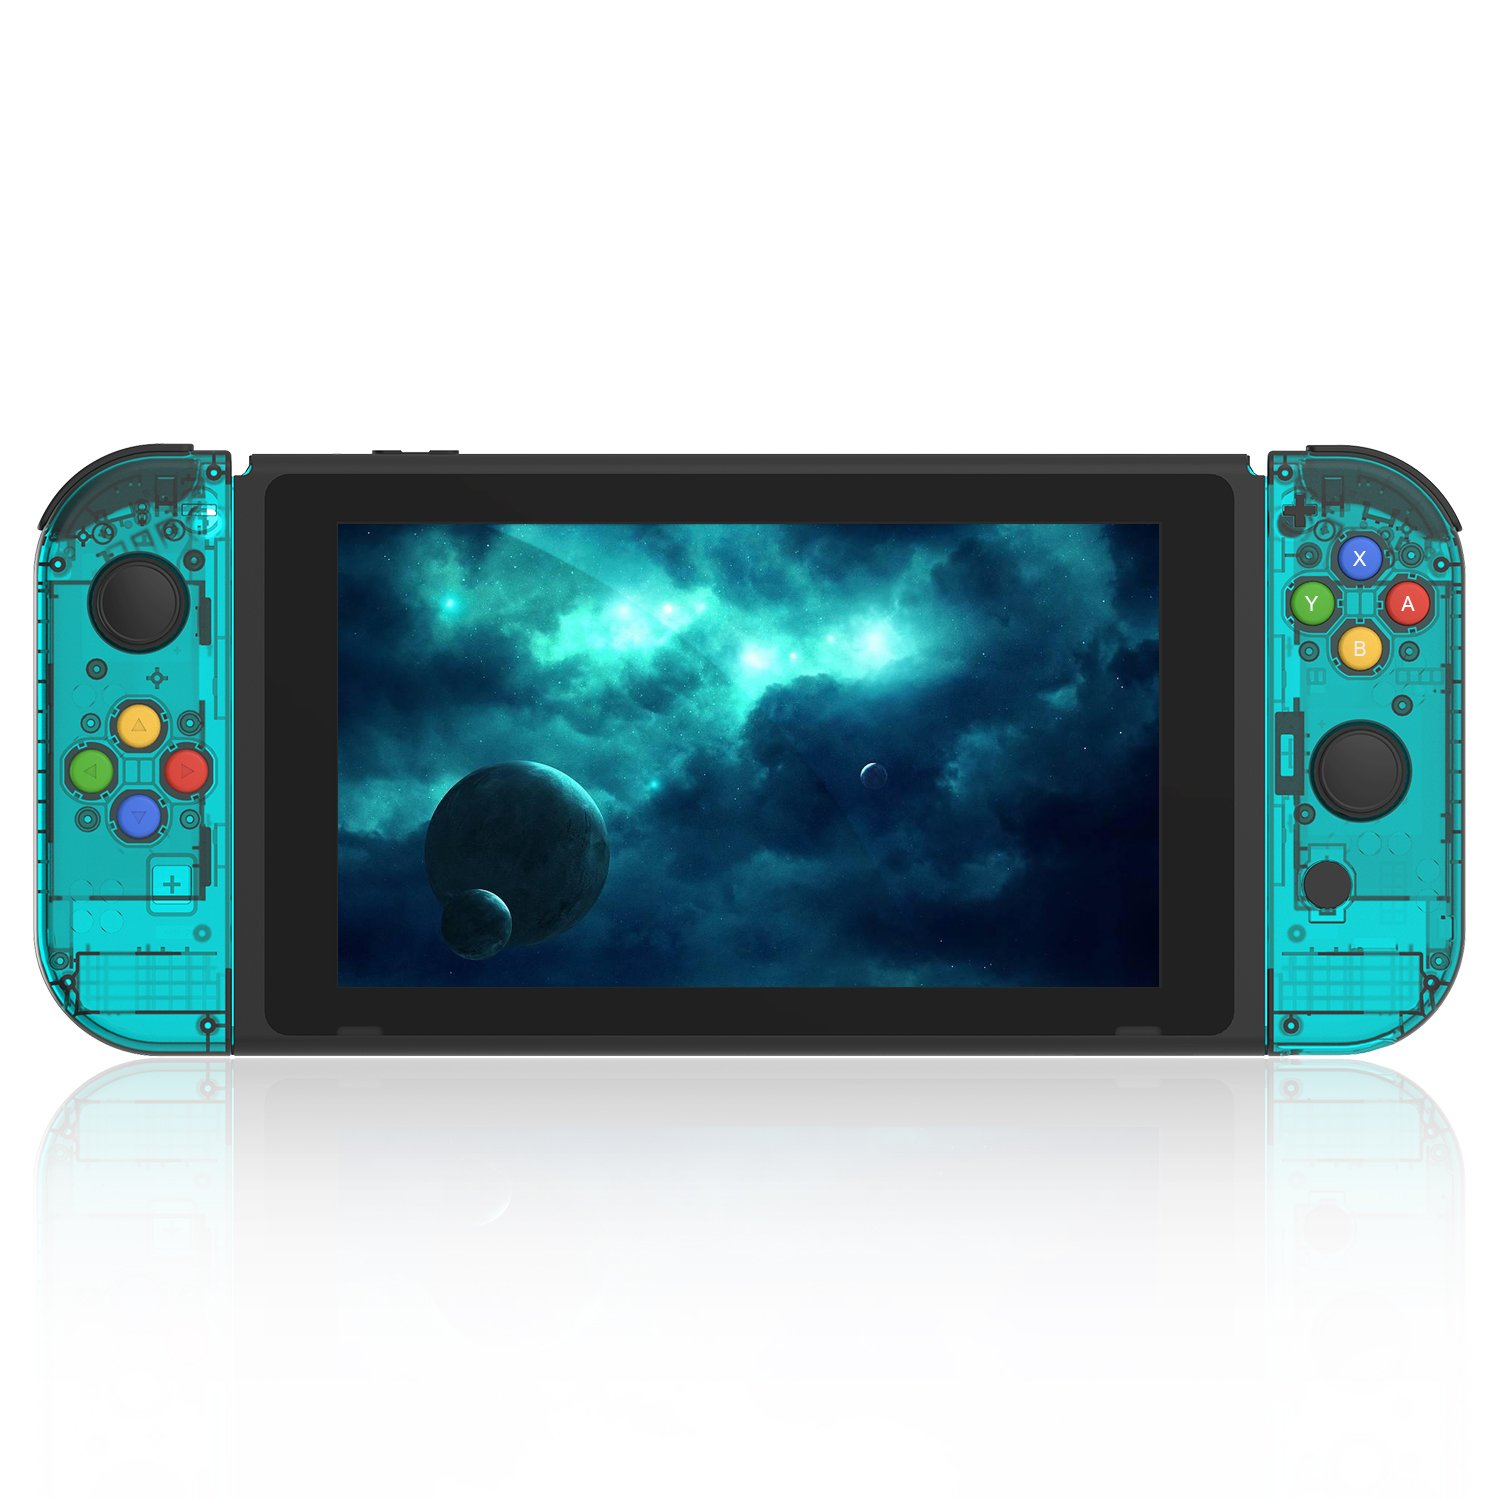 BASSTOP [Update Version] NS Joycon Handheld Controller Housing DIY  Replacement Shell Case for Nintendo Switch Joy-Con (L/R) Without  Electronics